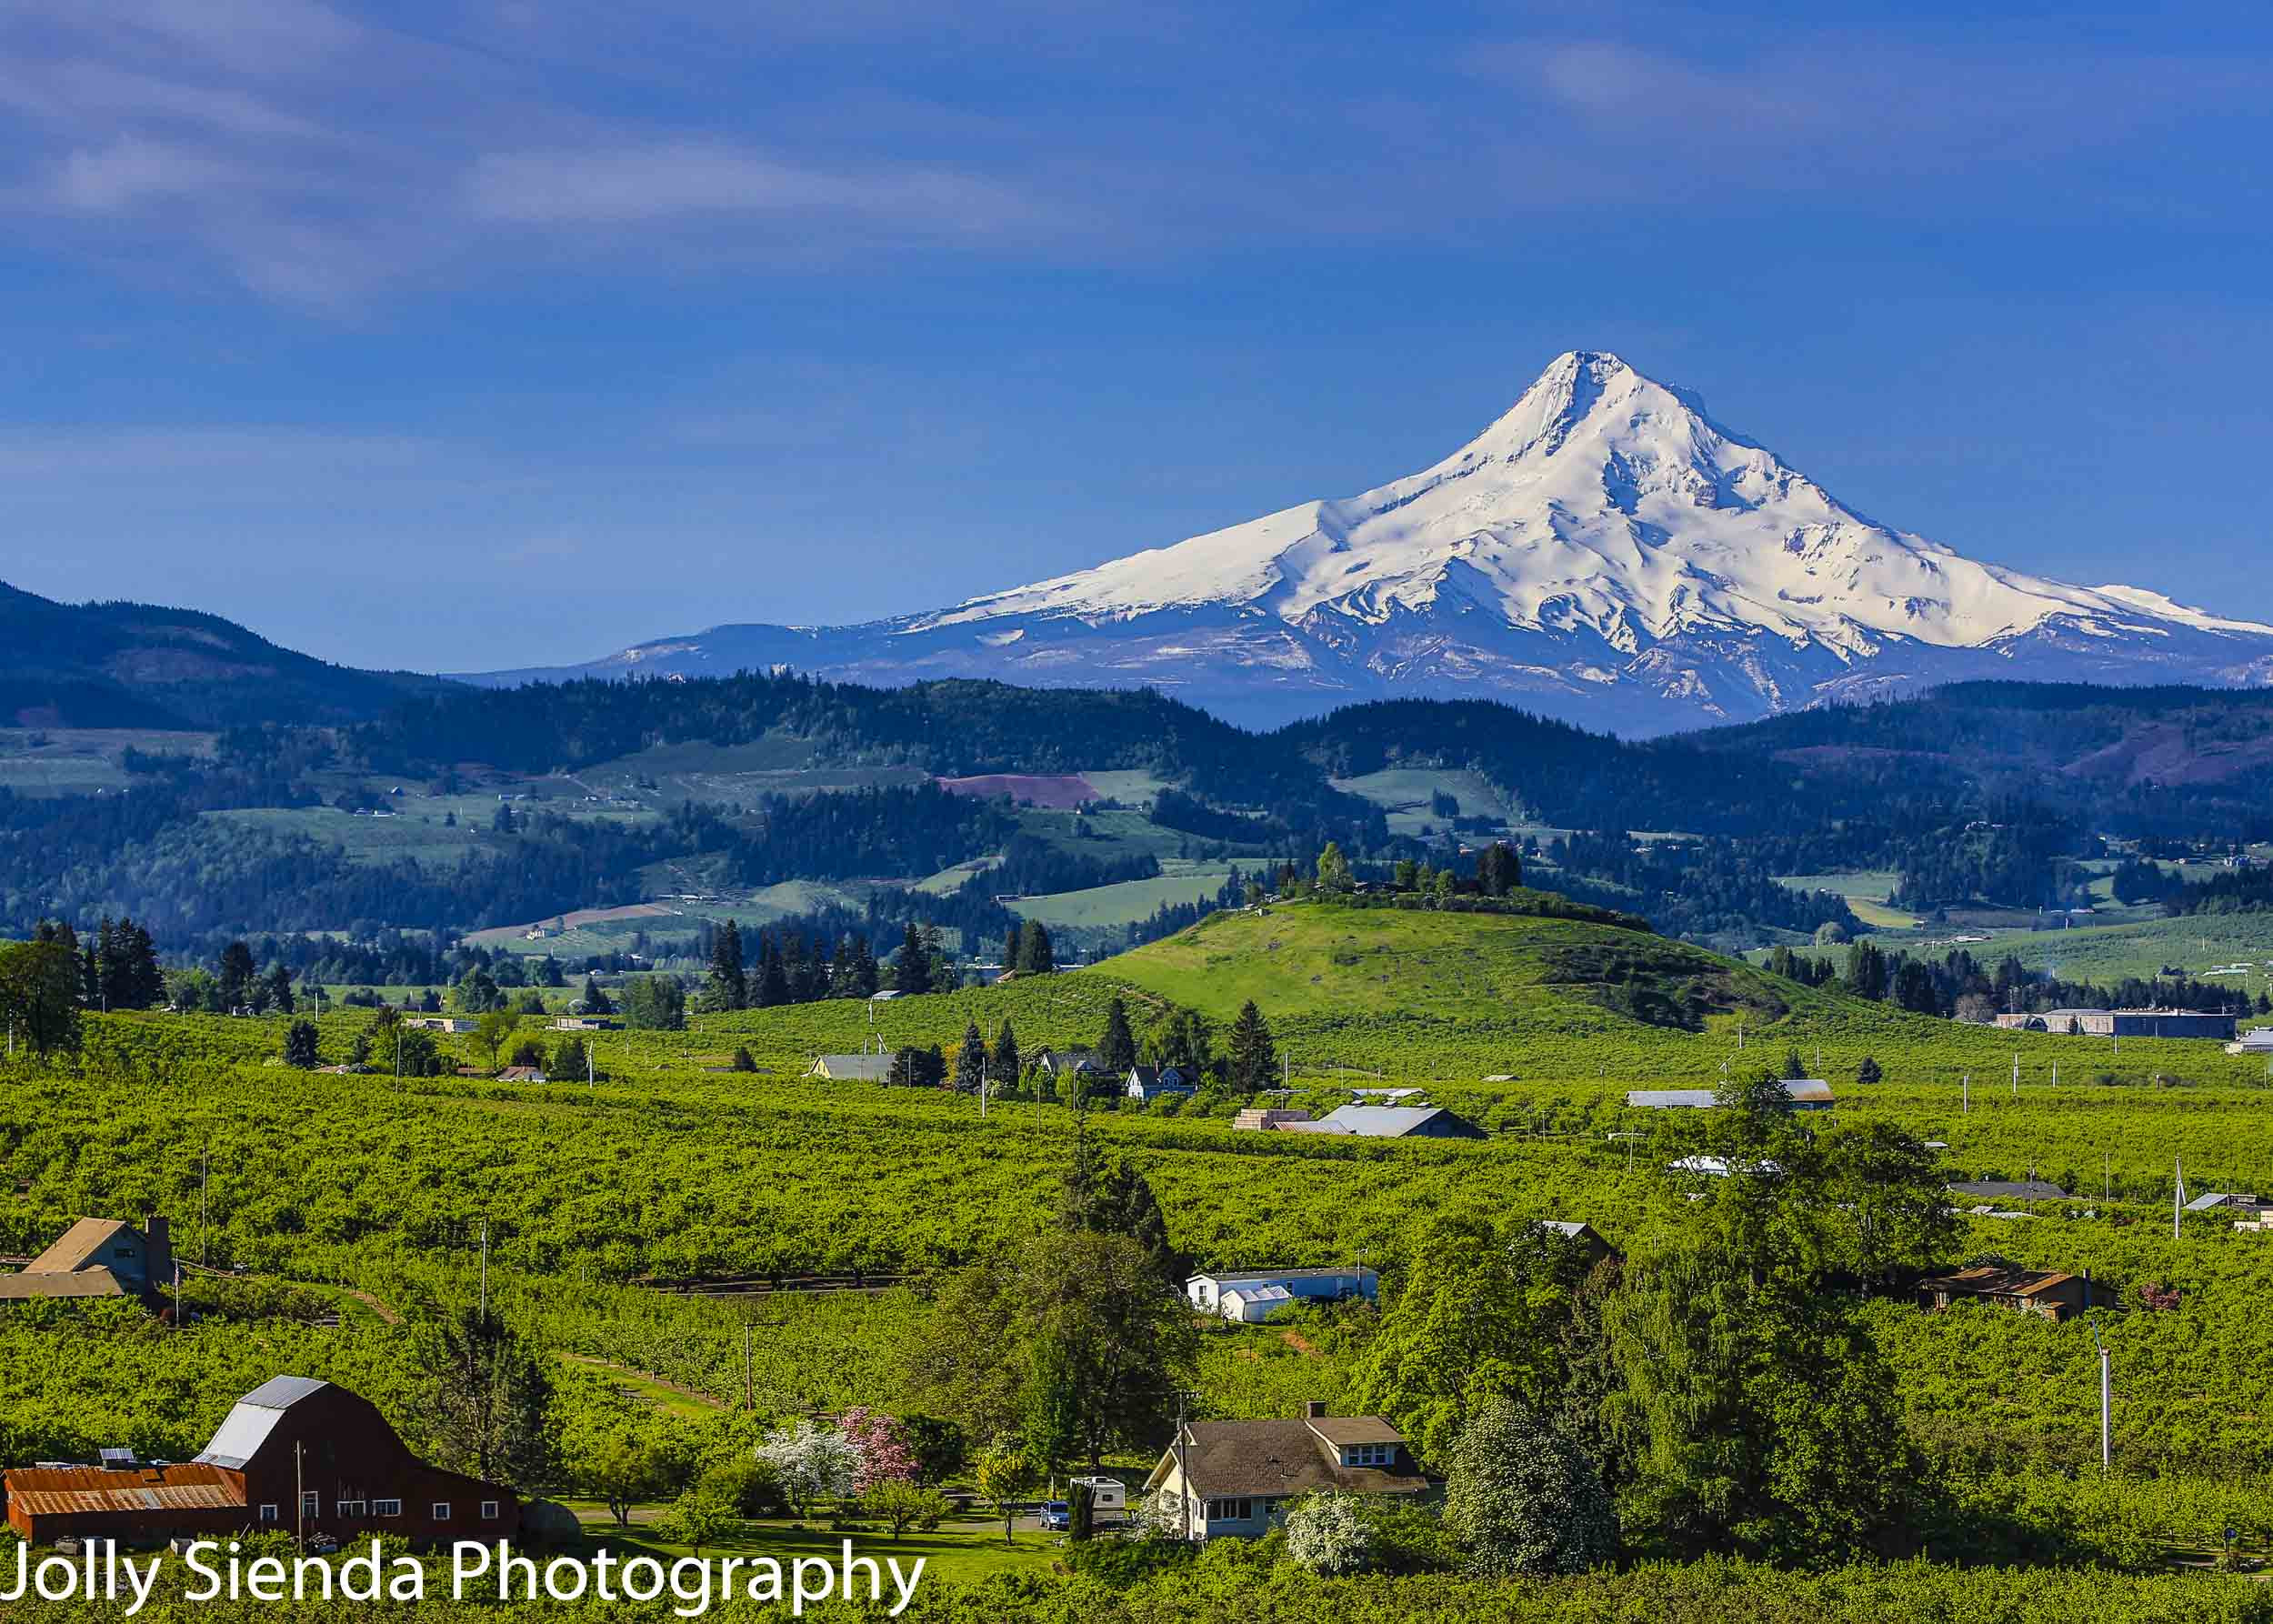 Snow Capped Mount Hood, Red Barn, Farms, and the Hood River Vall